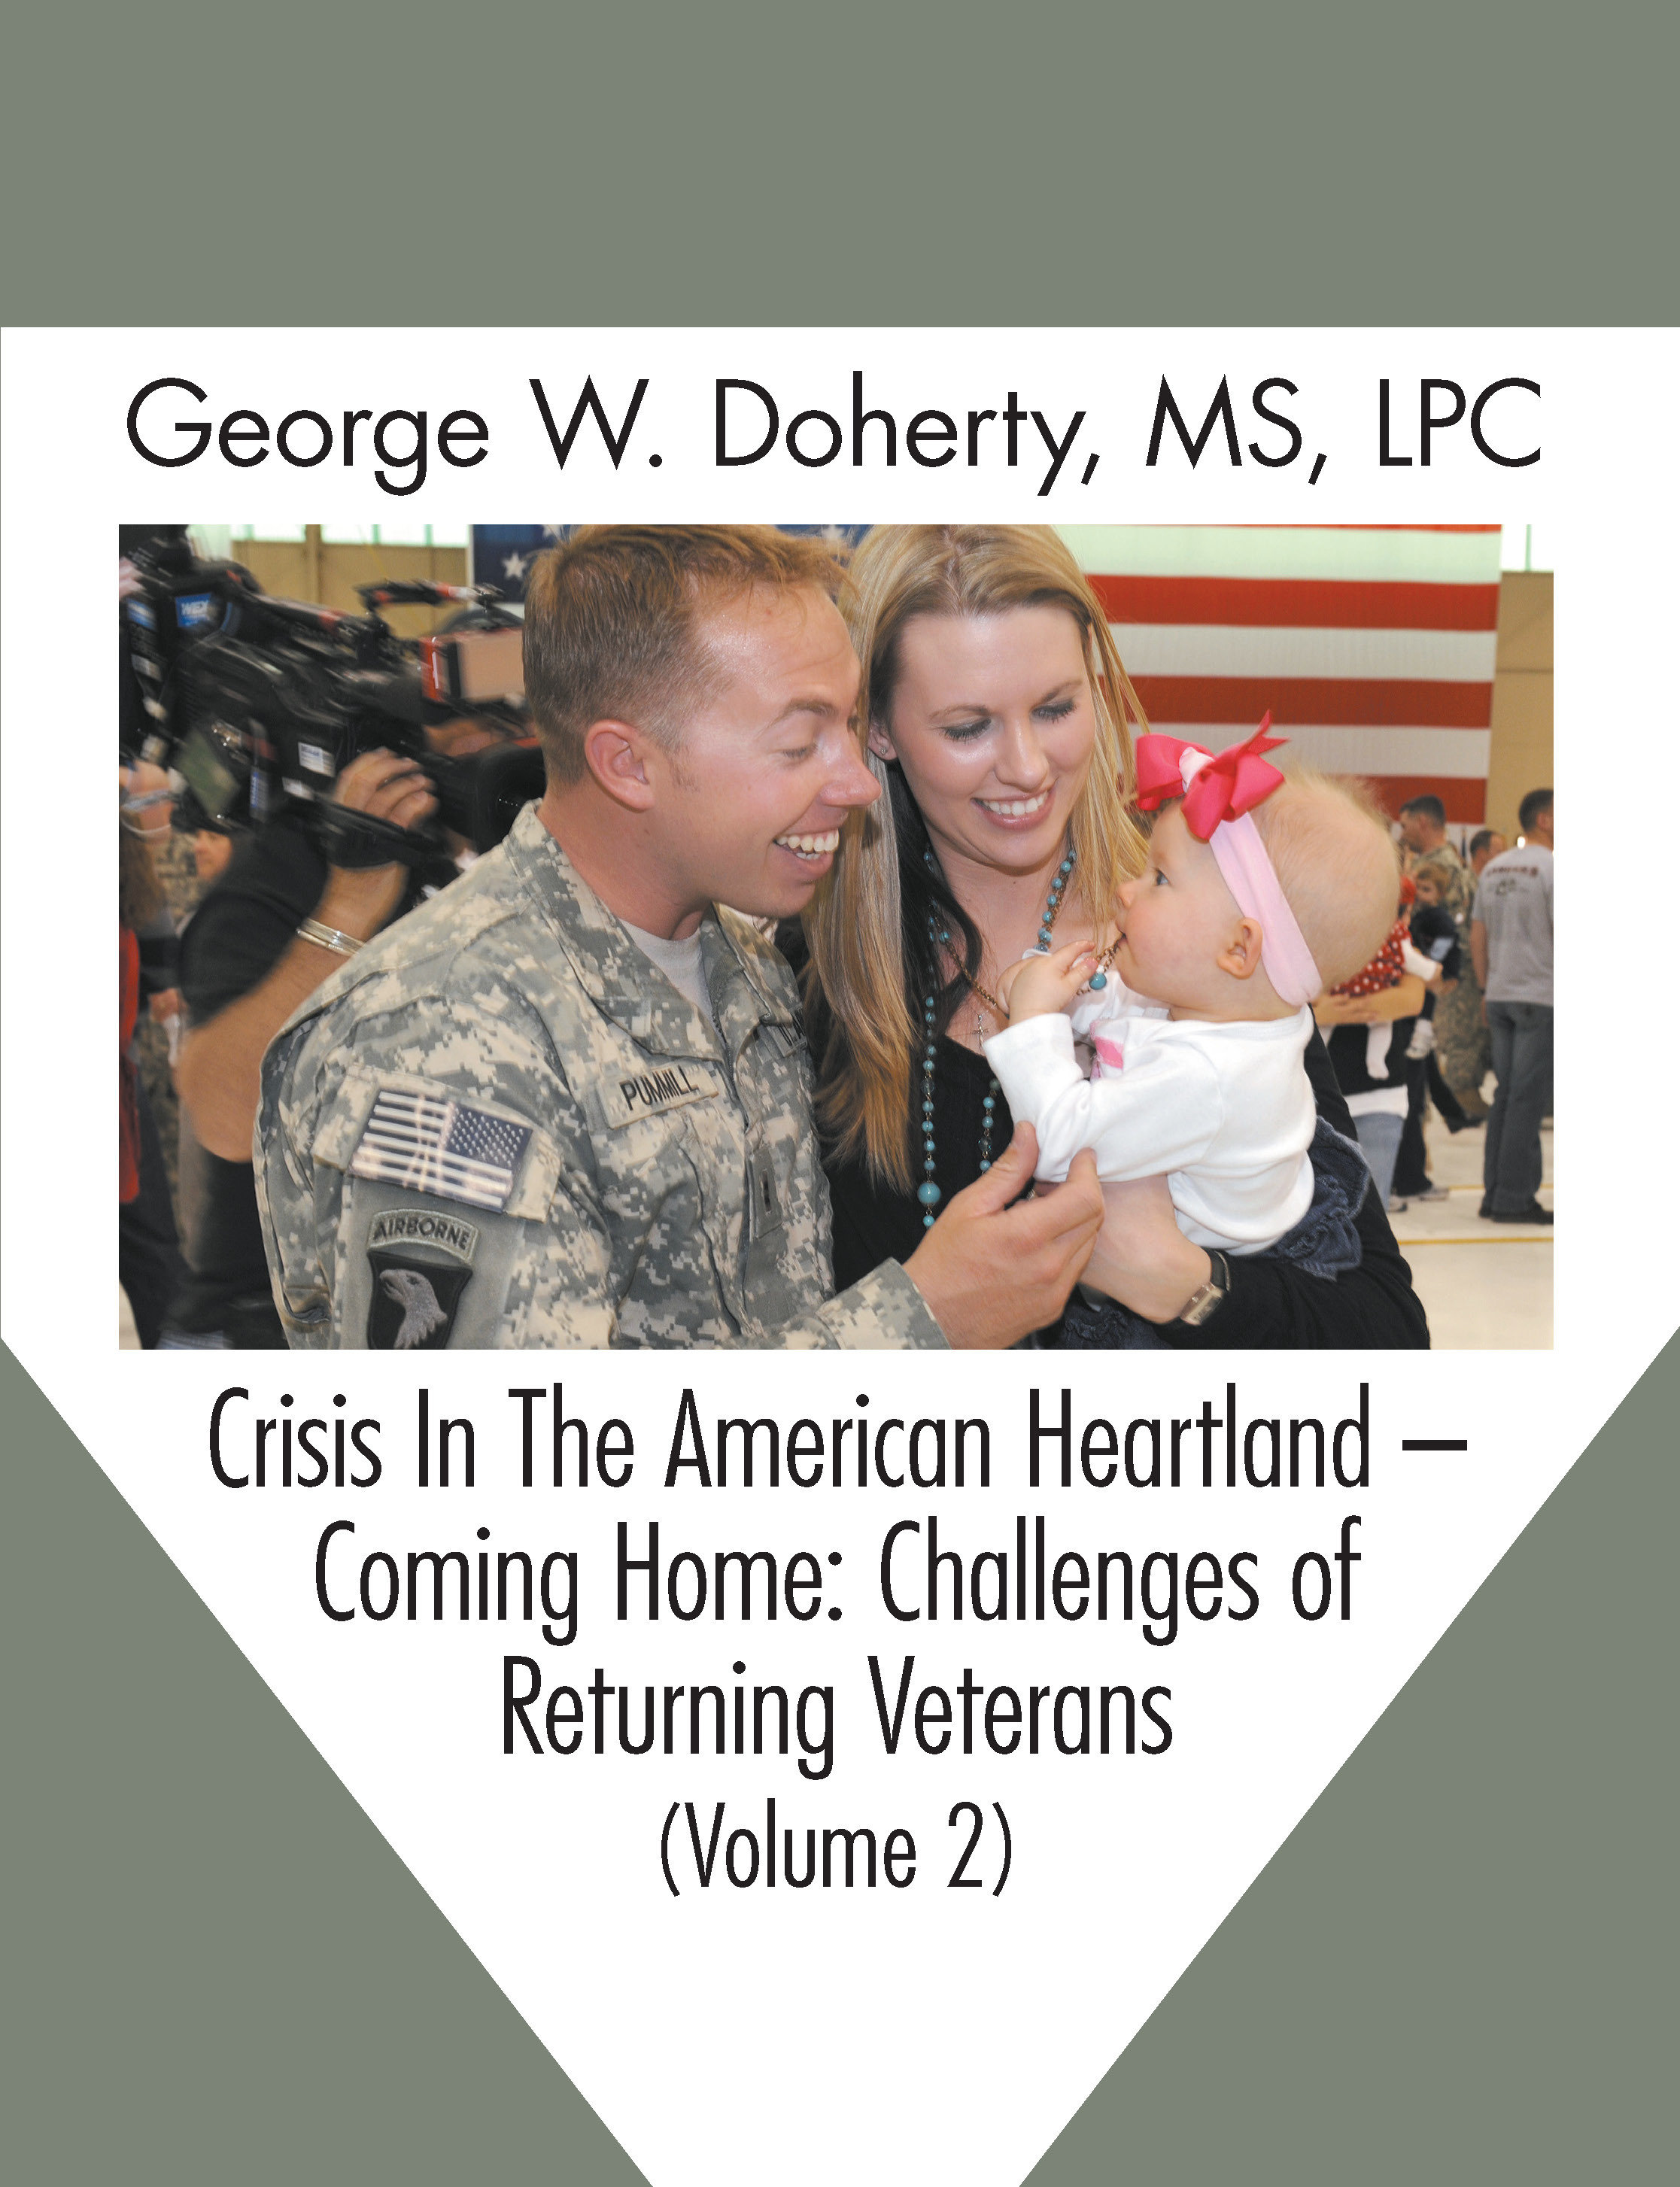 Crisis in the American Heartland -- Coming Home: Challenges of Returning Veterans (Volume 2) 978-1-61599-153-2